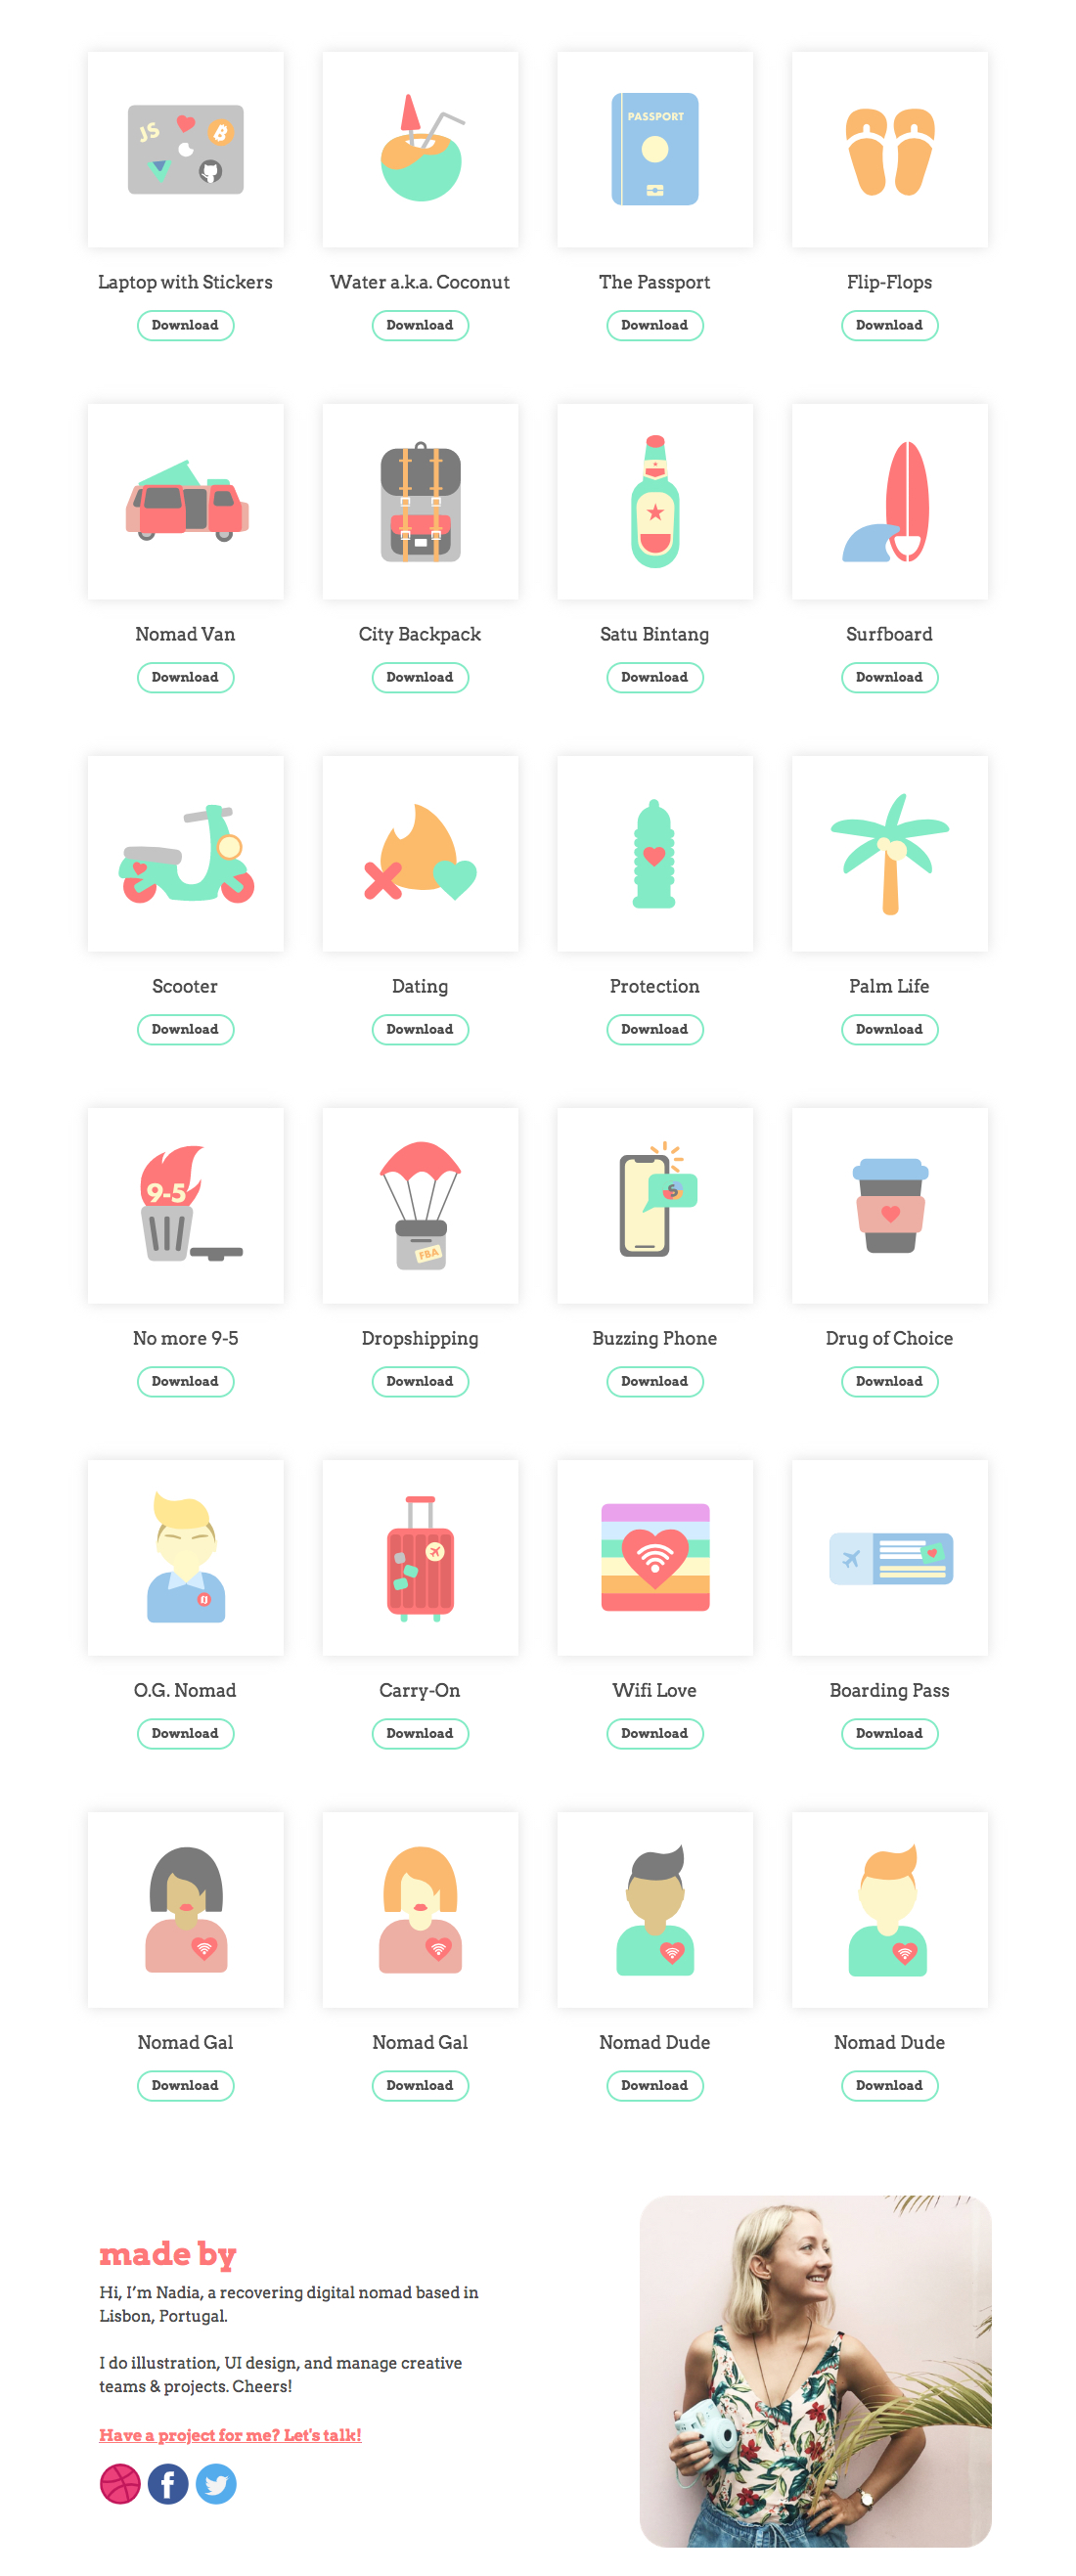 Digital Nomad Starter Icon Pack - Lifestyle icon & emoji pack for your next project